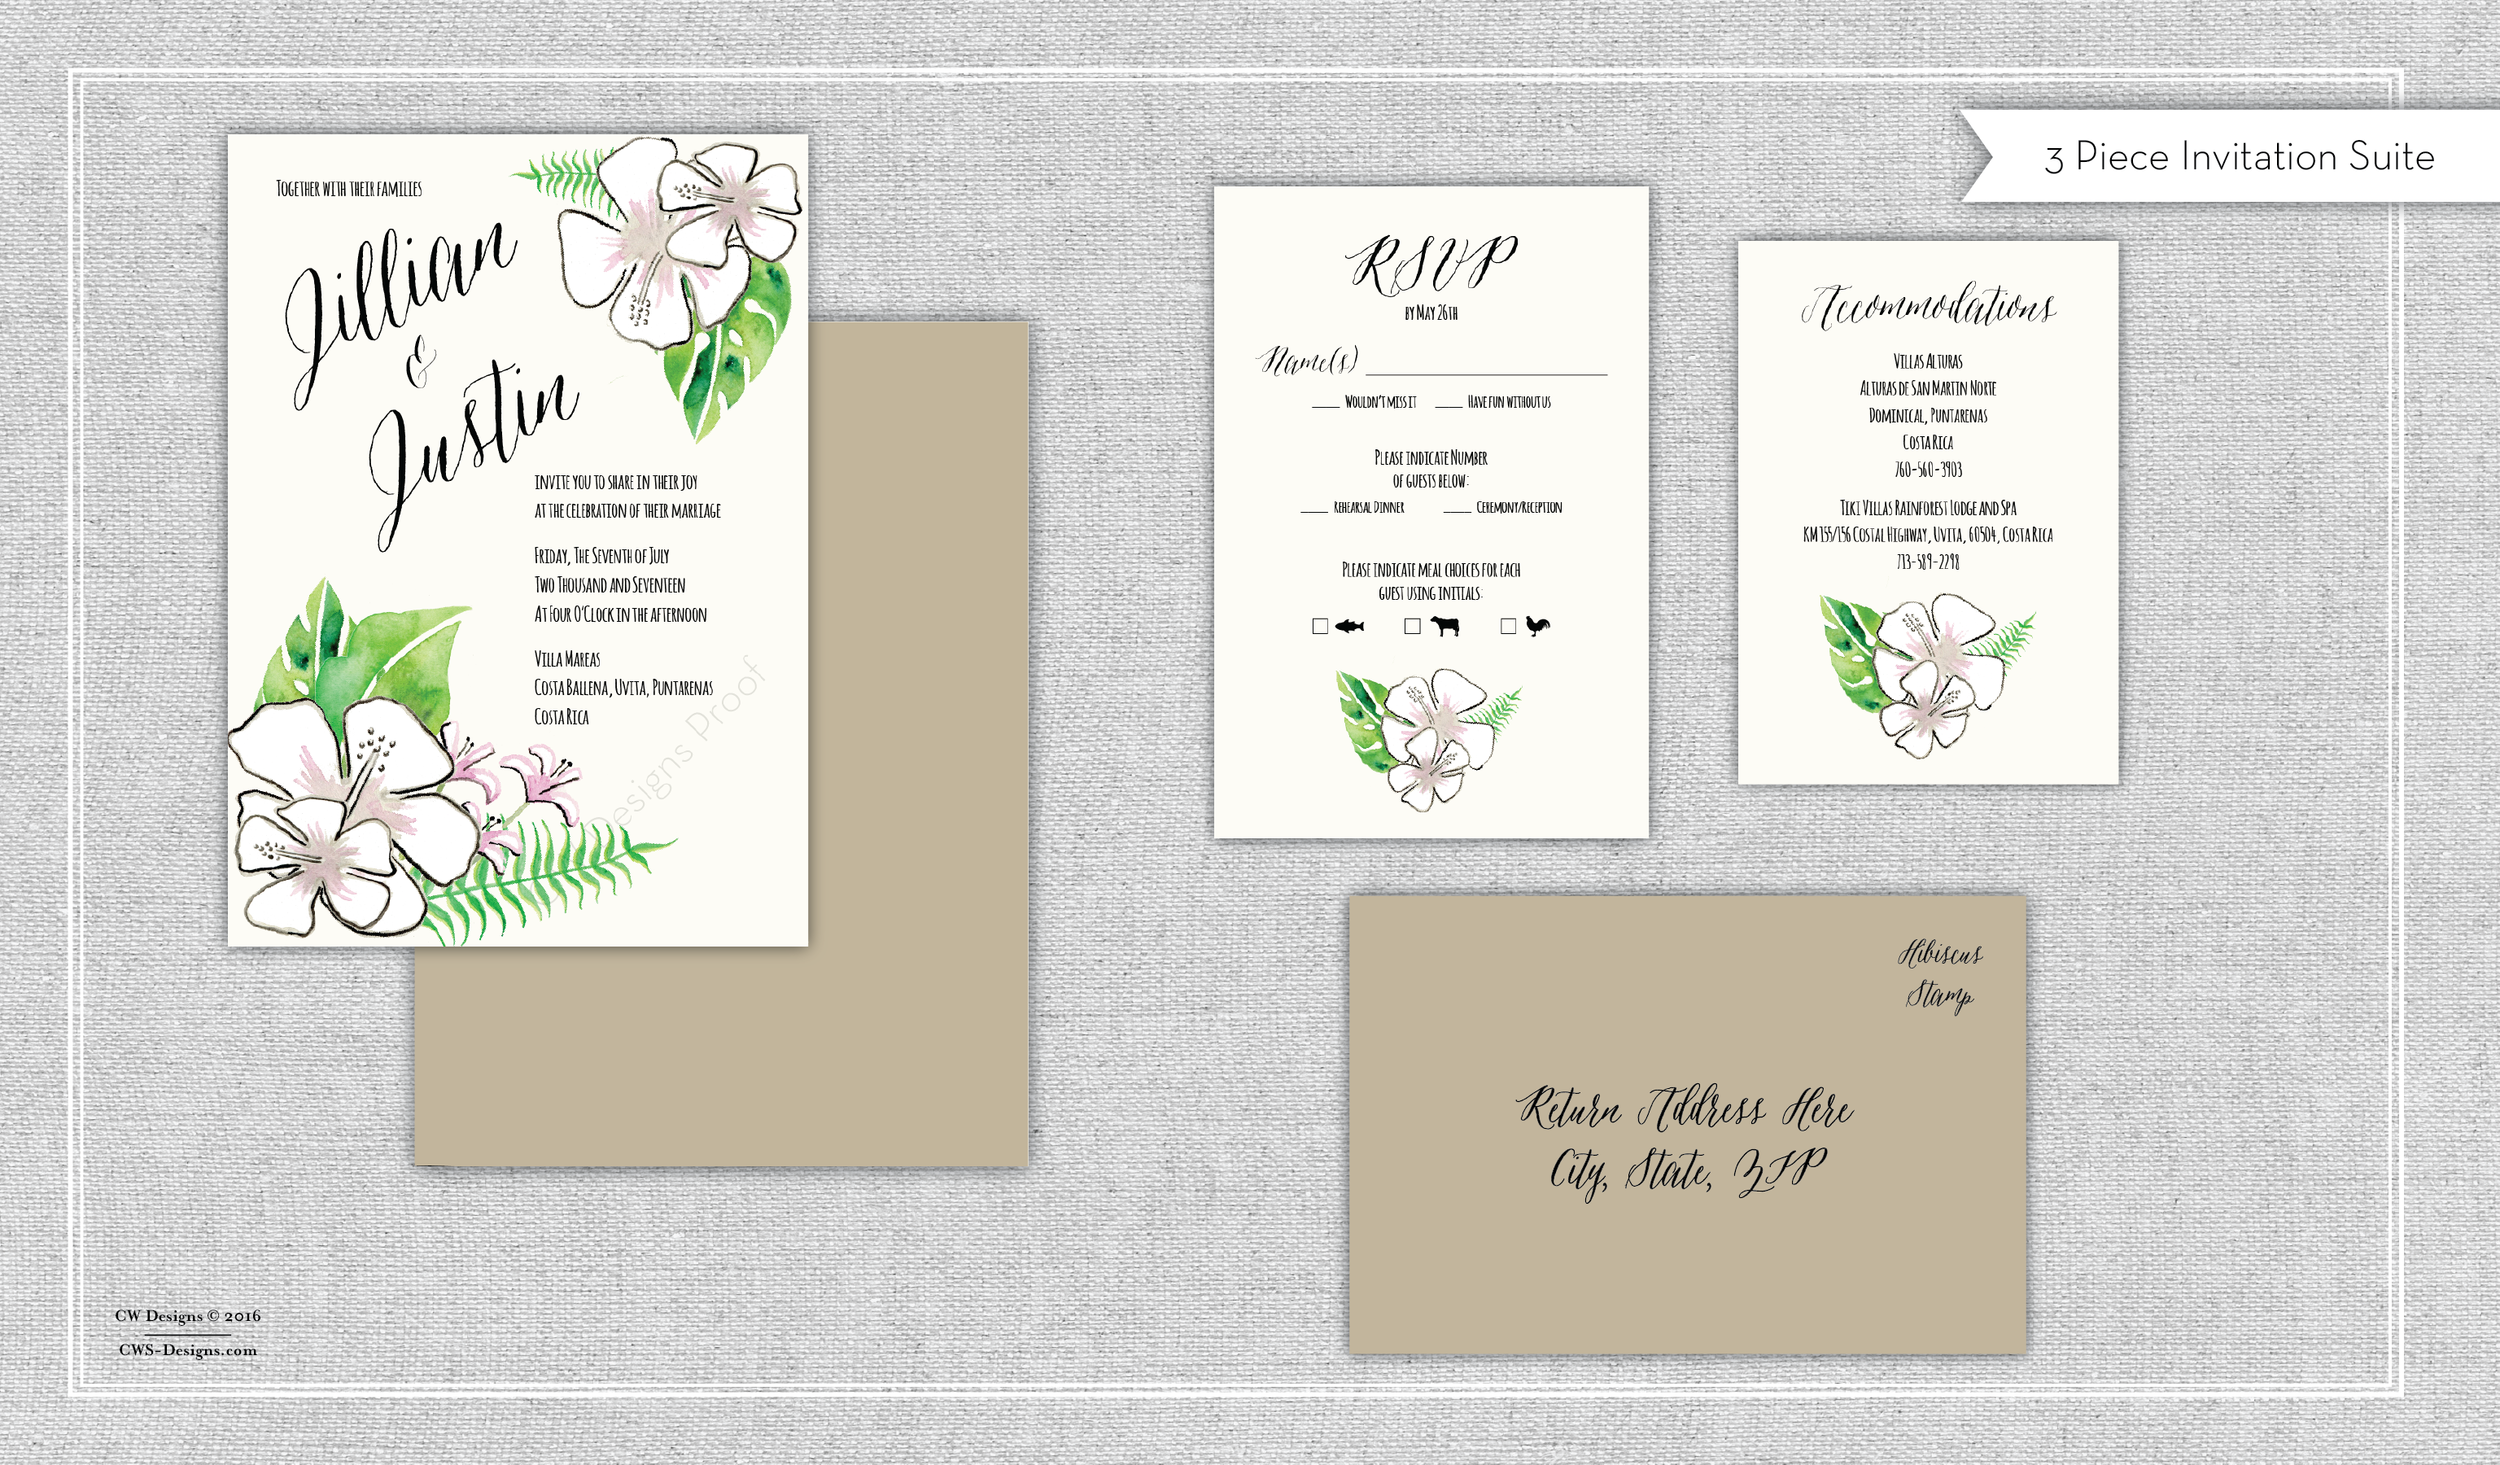 Costa Rica Wedding Invitation.png